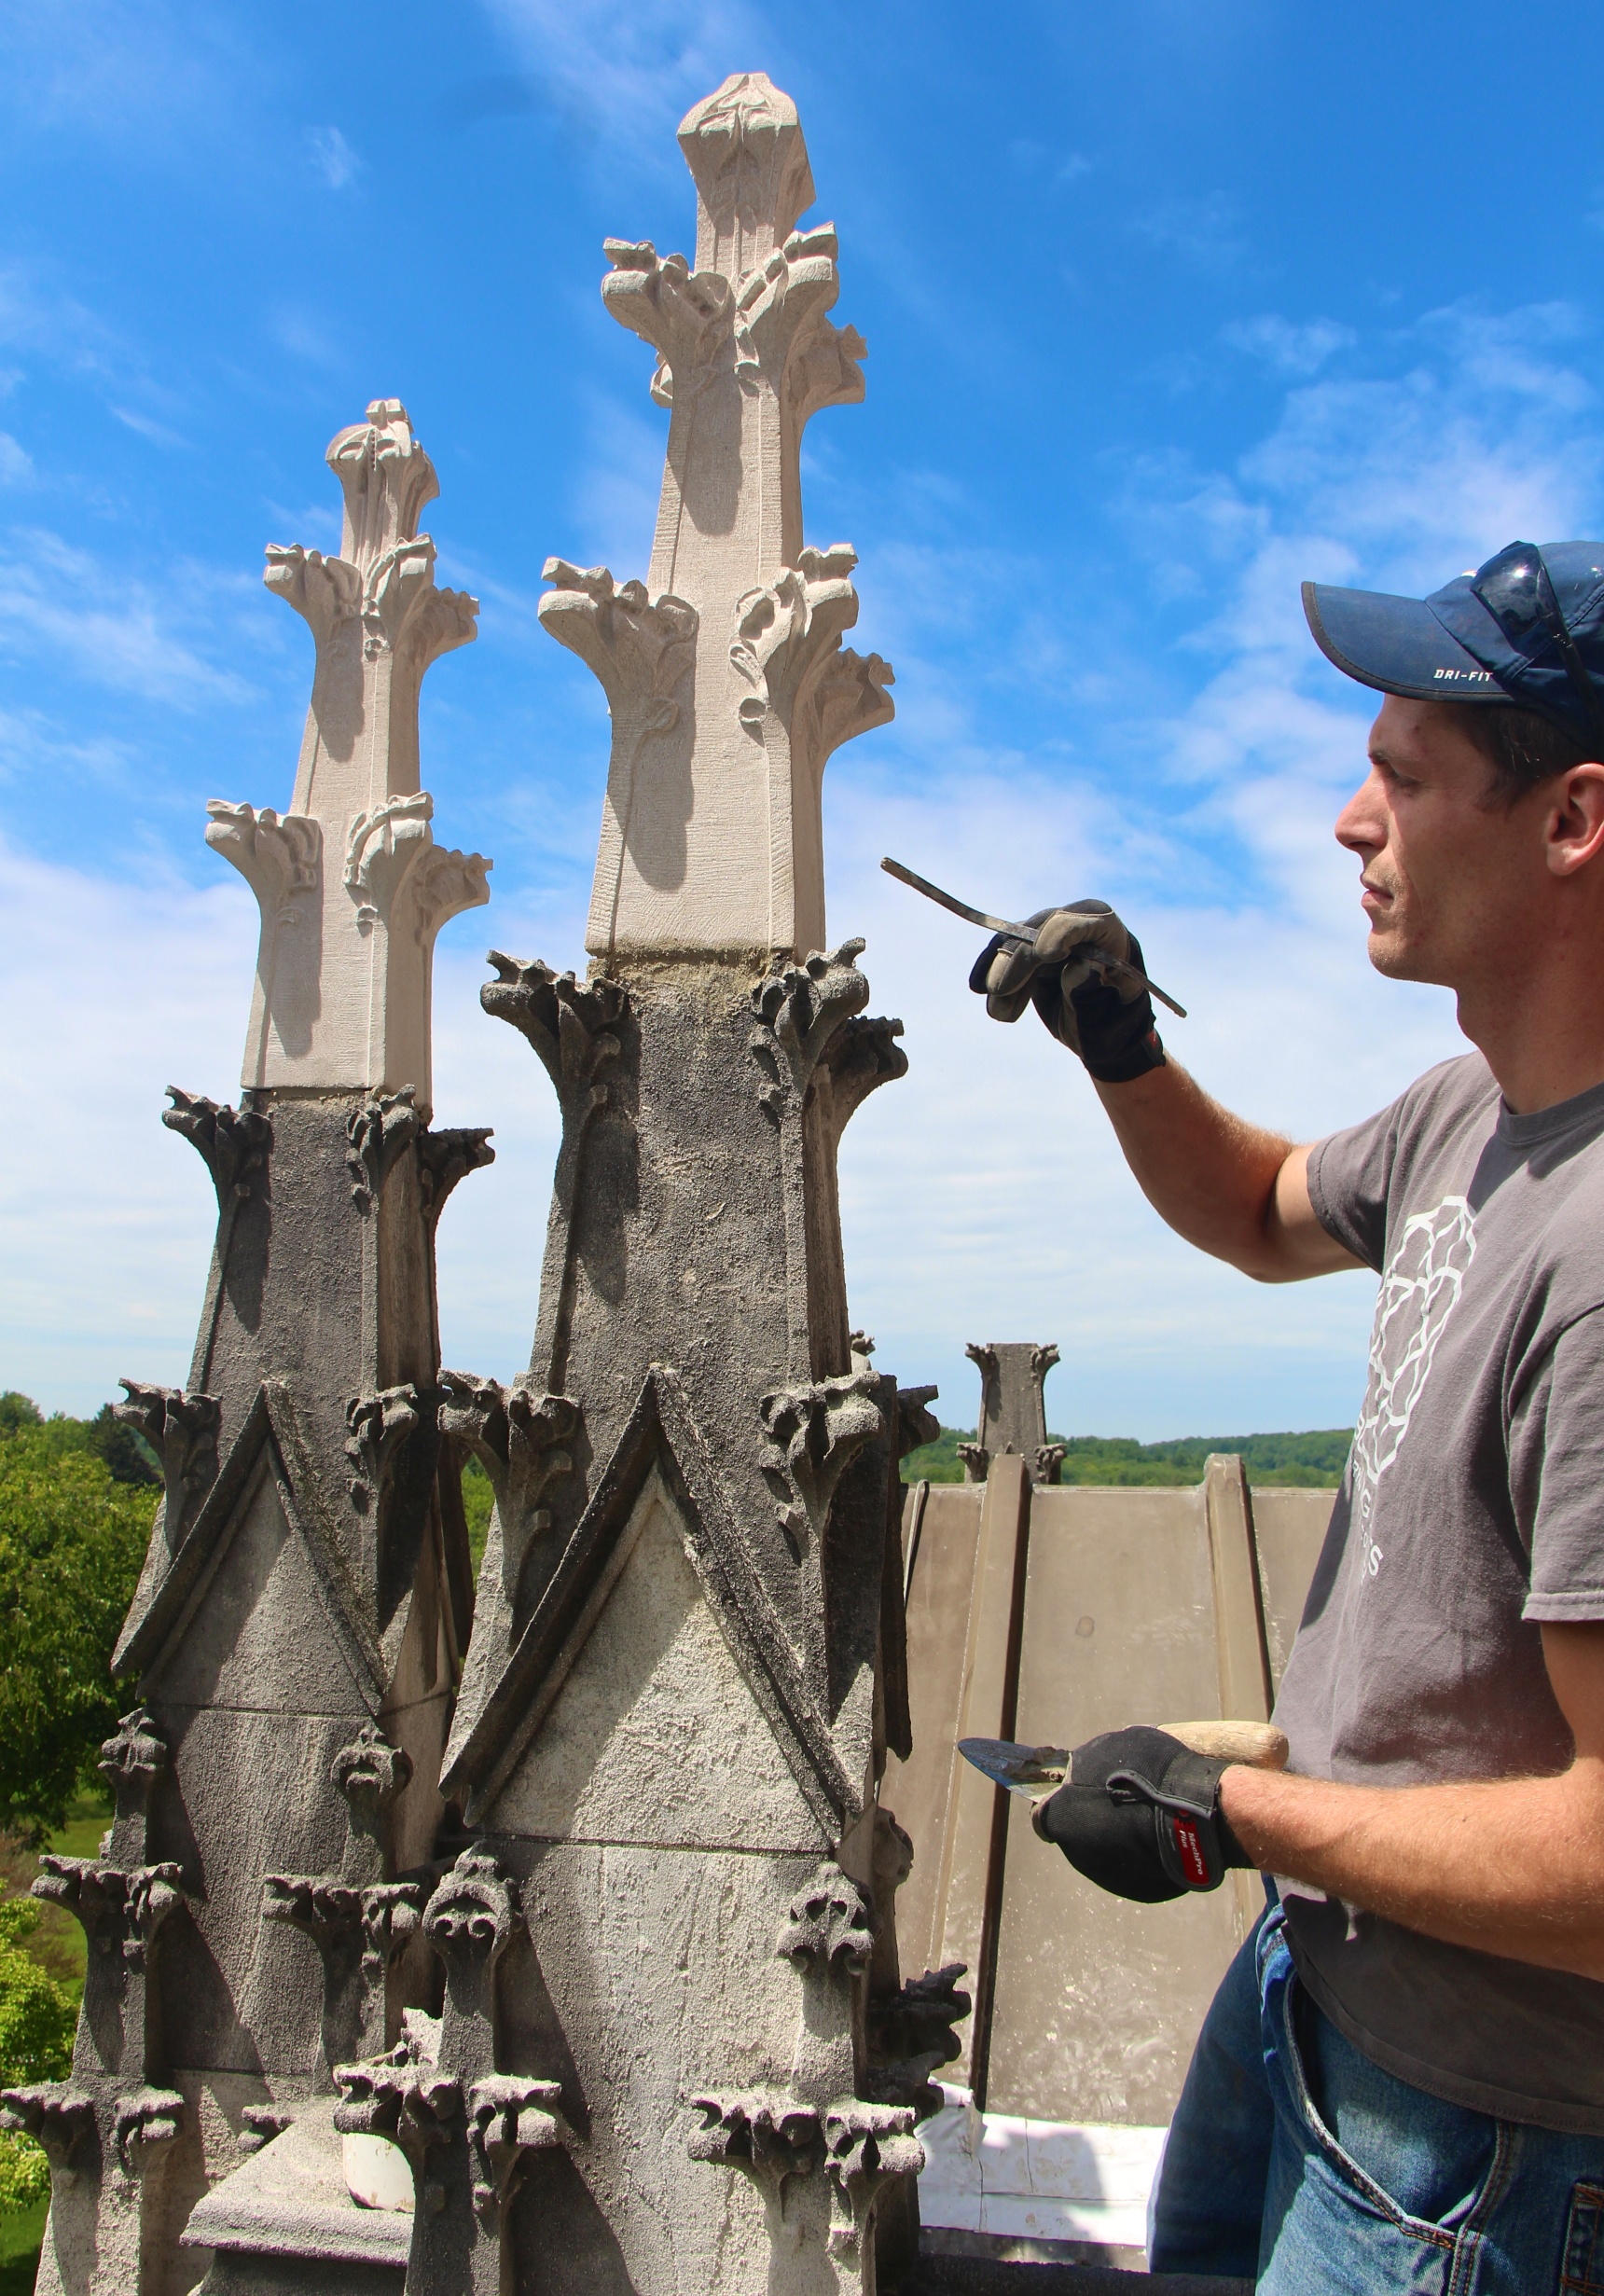 Figure 8: Grayson Zuber applies restoration mortar to secure one of the new limestone finials.